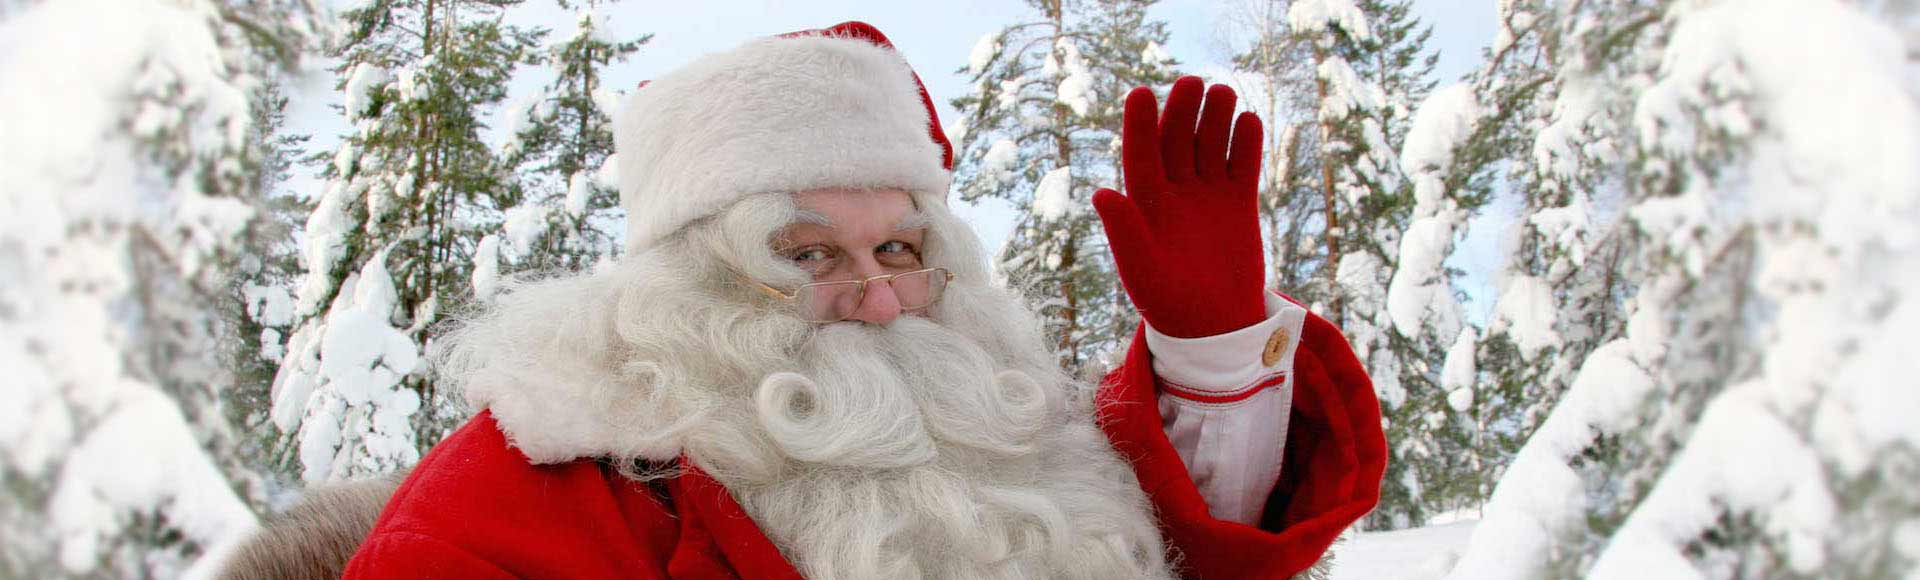 Santa Claus Images For Facebook